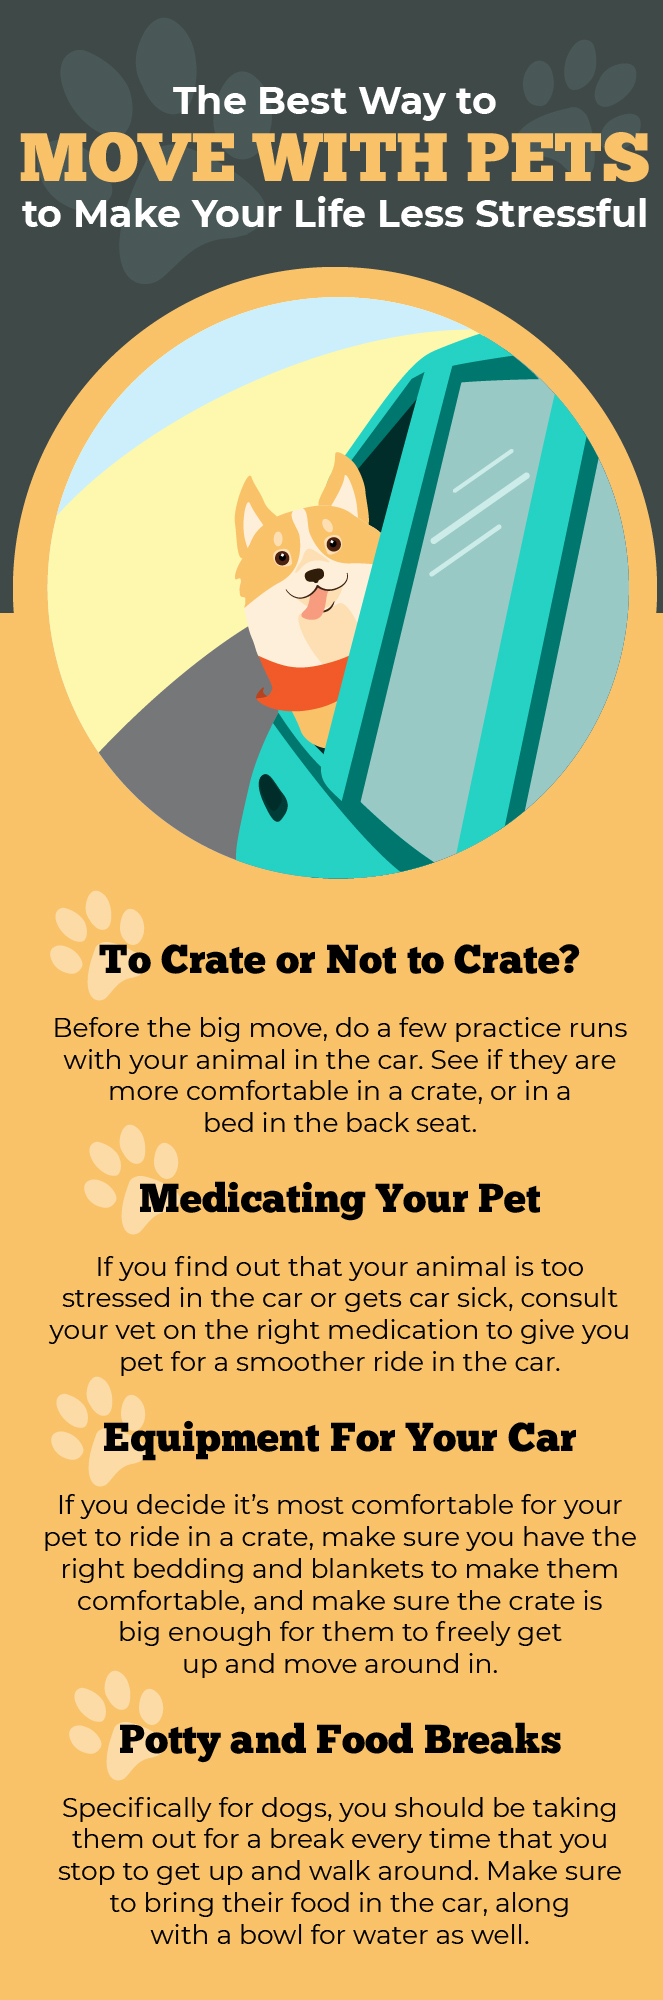 The Best Ways to Move with Pets